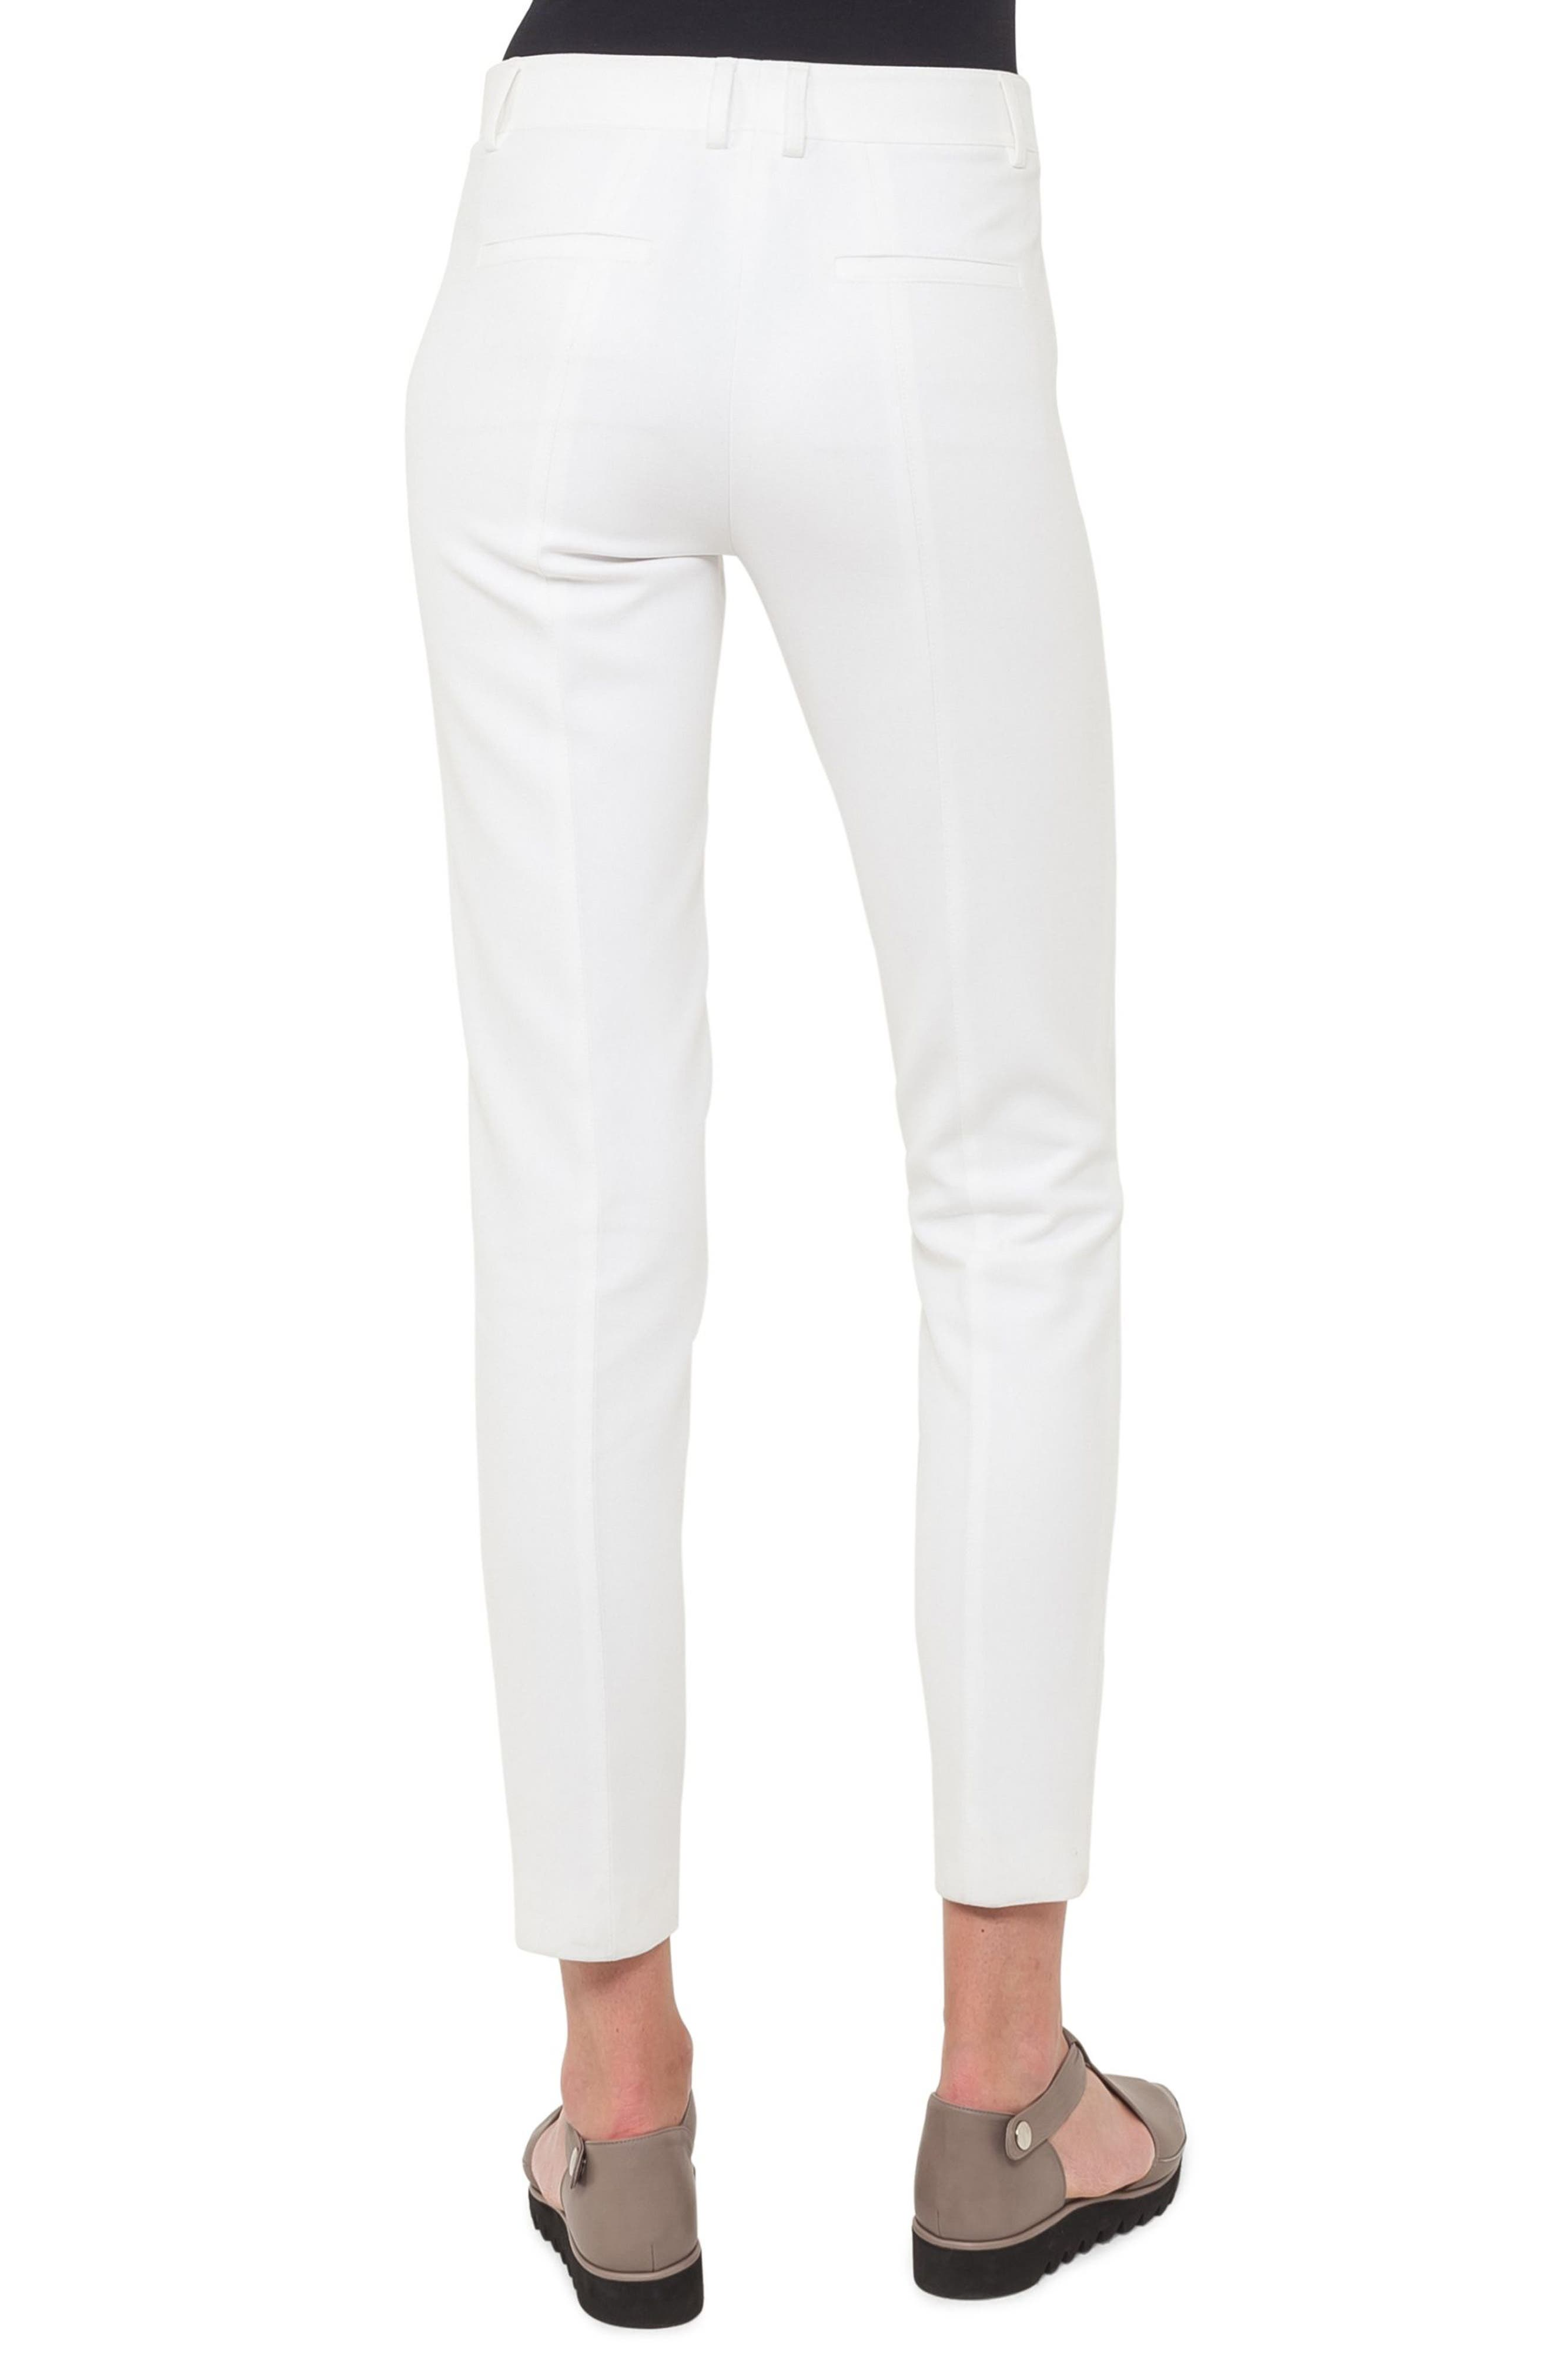 Fabia Pants,                             Alternate thumbnail 2, color,                             CREAM